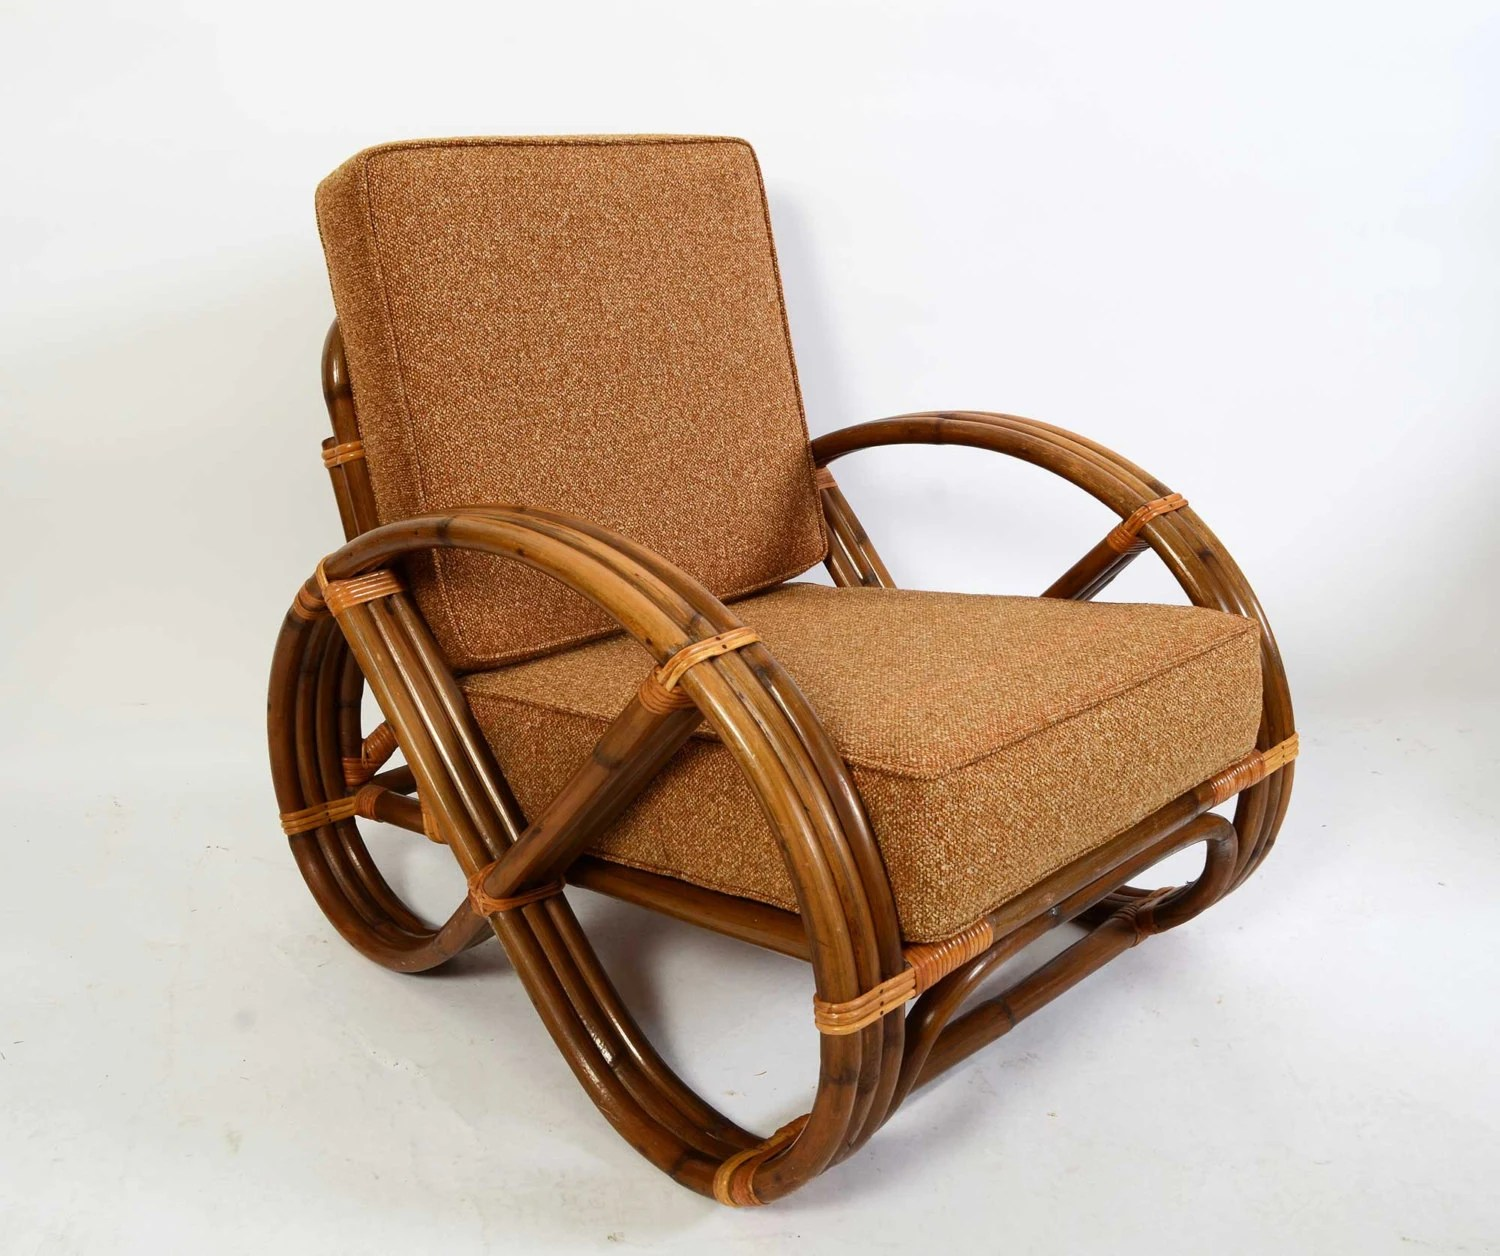 Pretzel Chair Bamboo And Rattan Arm Chair Made By Calif Asia 1960 Pretzel